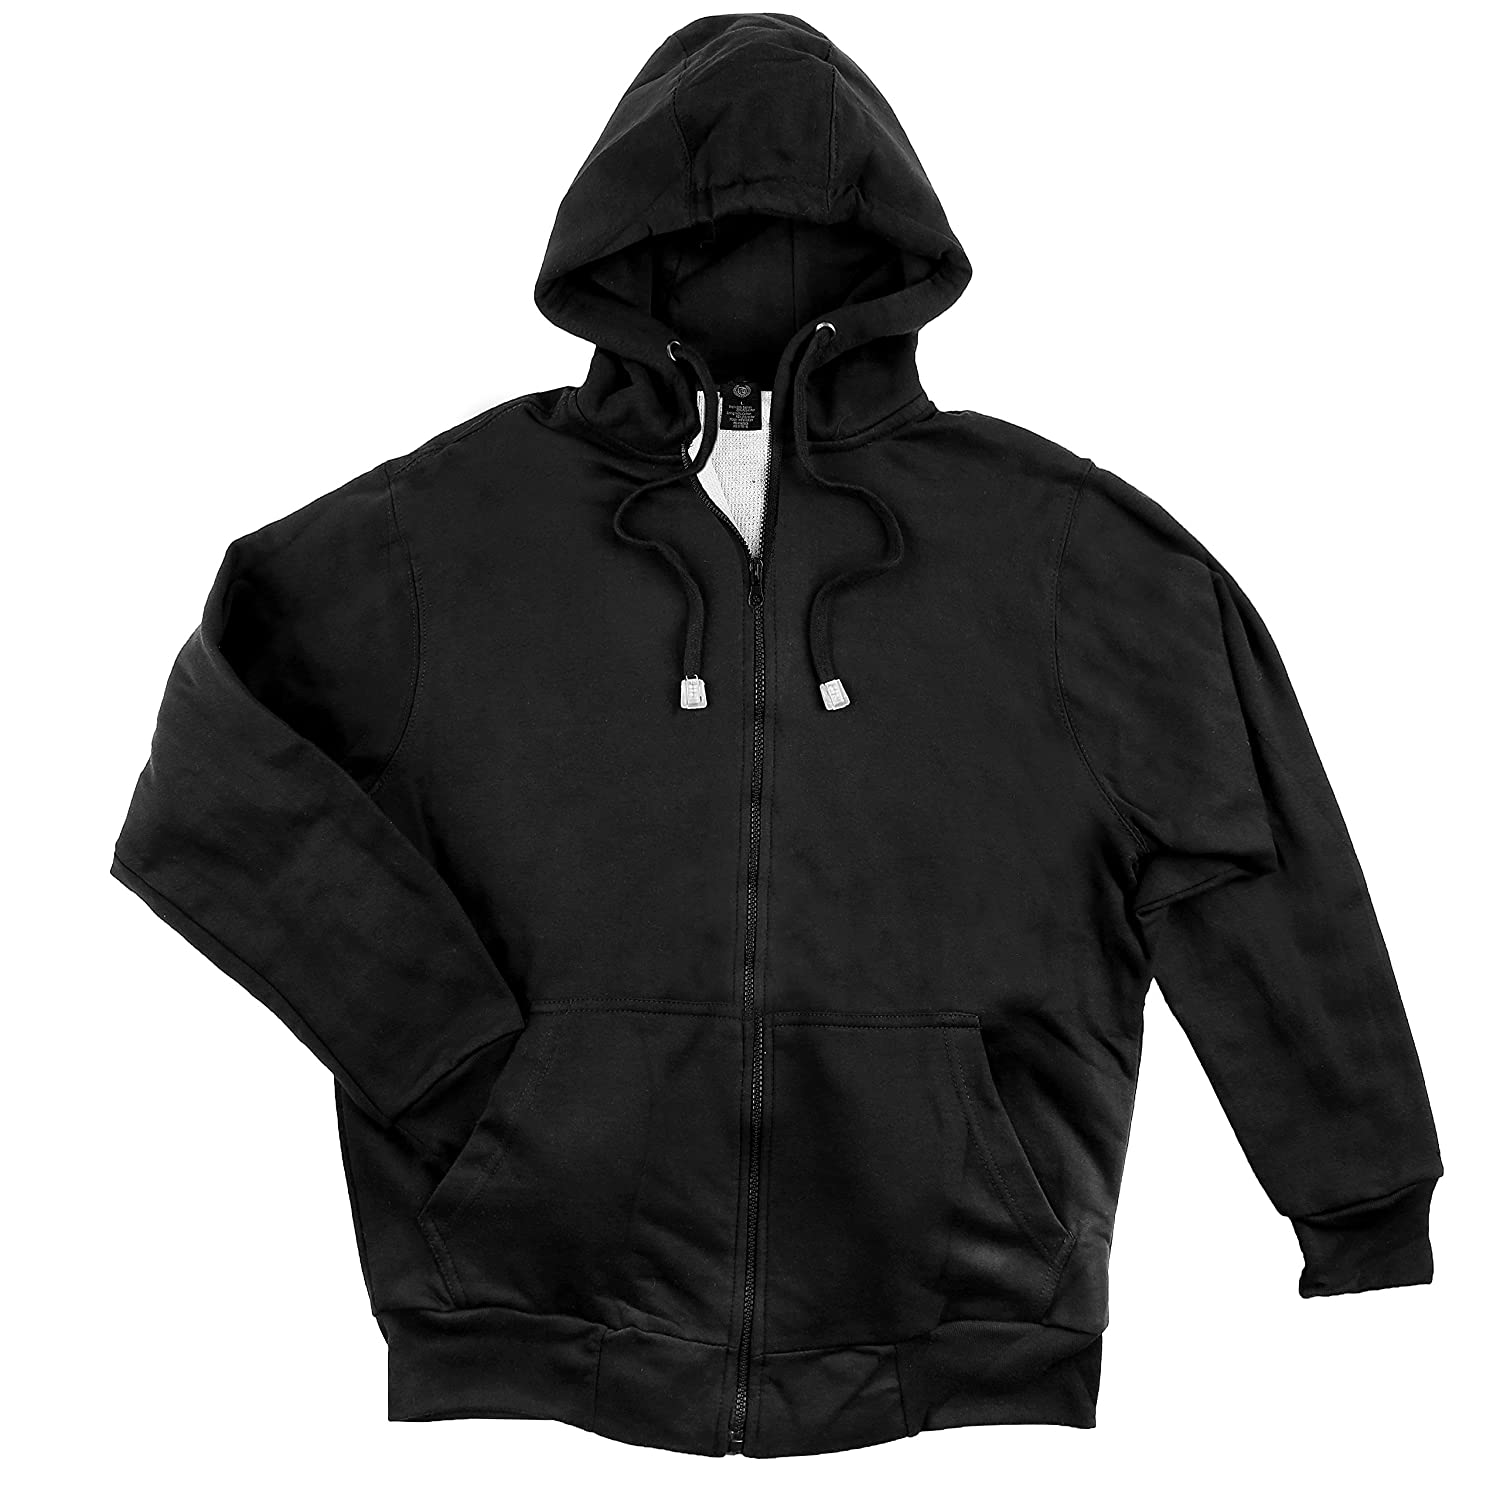 North 15 Men's Hooded Sweatshirt Waffle Knit Thermal Lined - Zipper Front 60%OFF